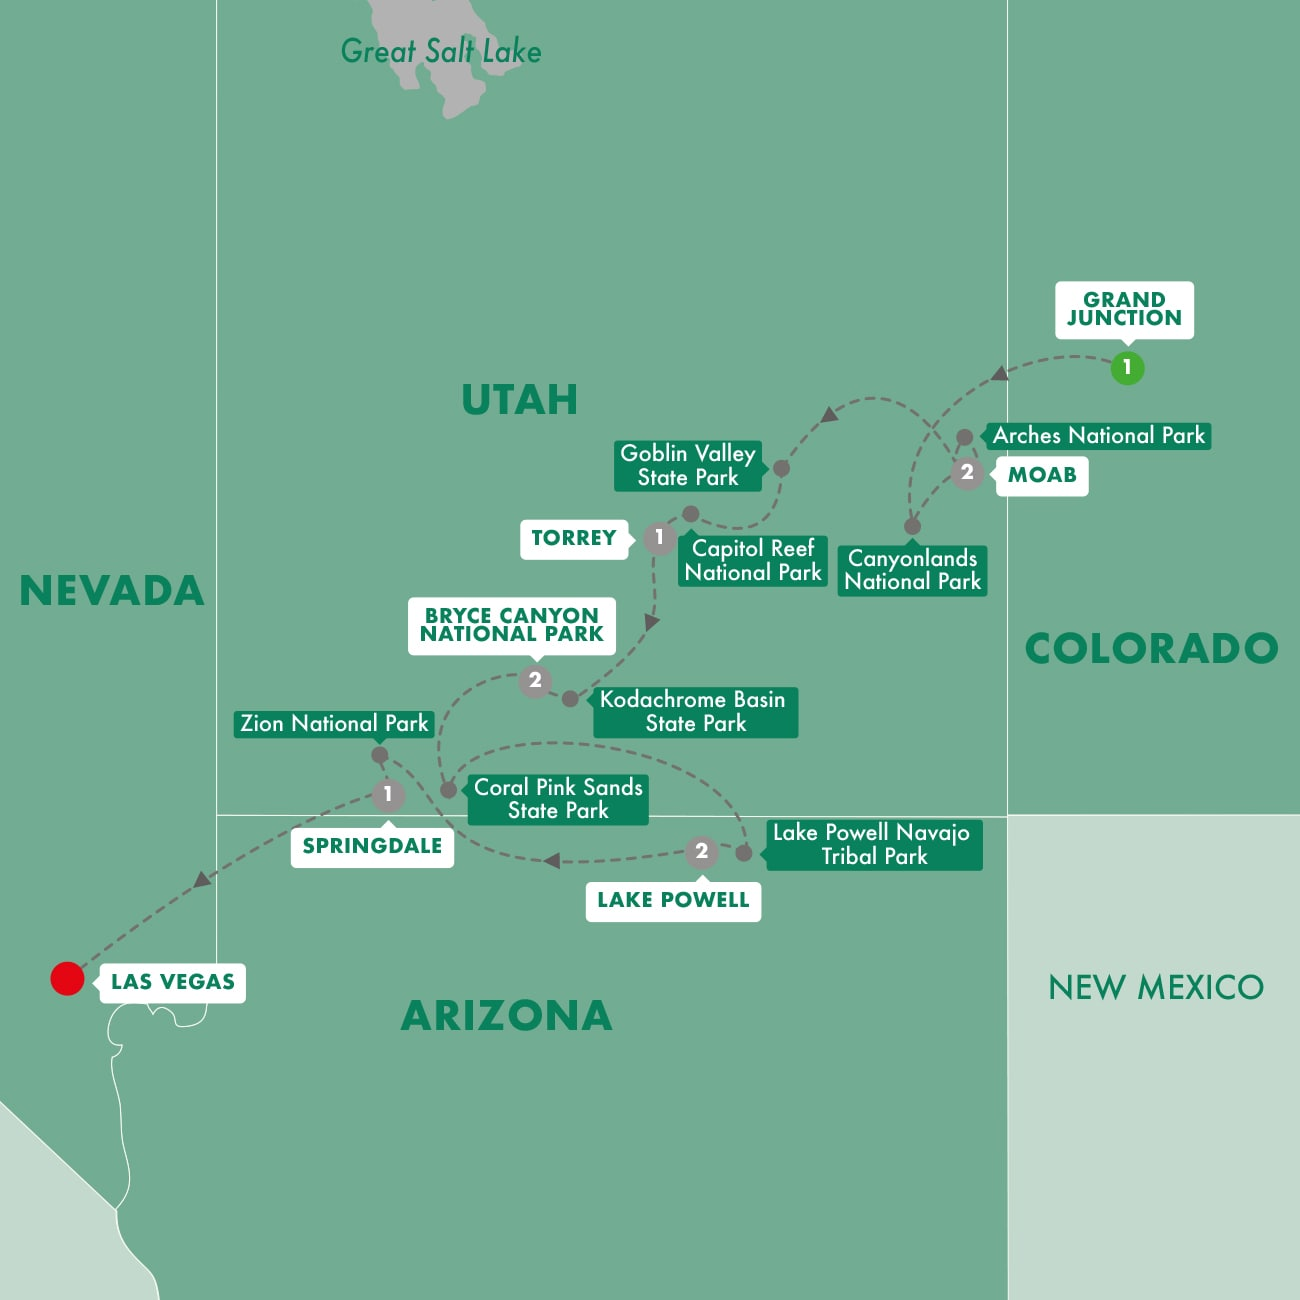 Utah's Mighty Five National Parks Map